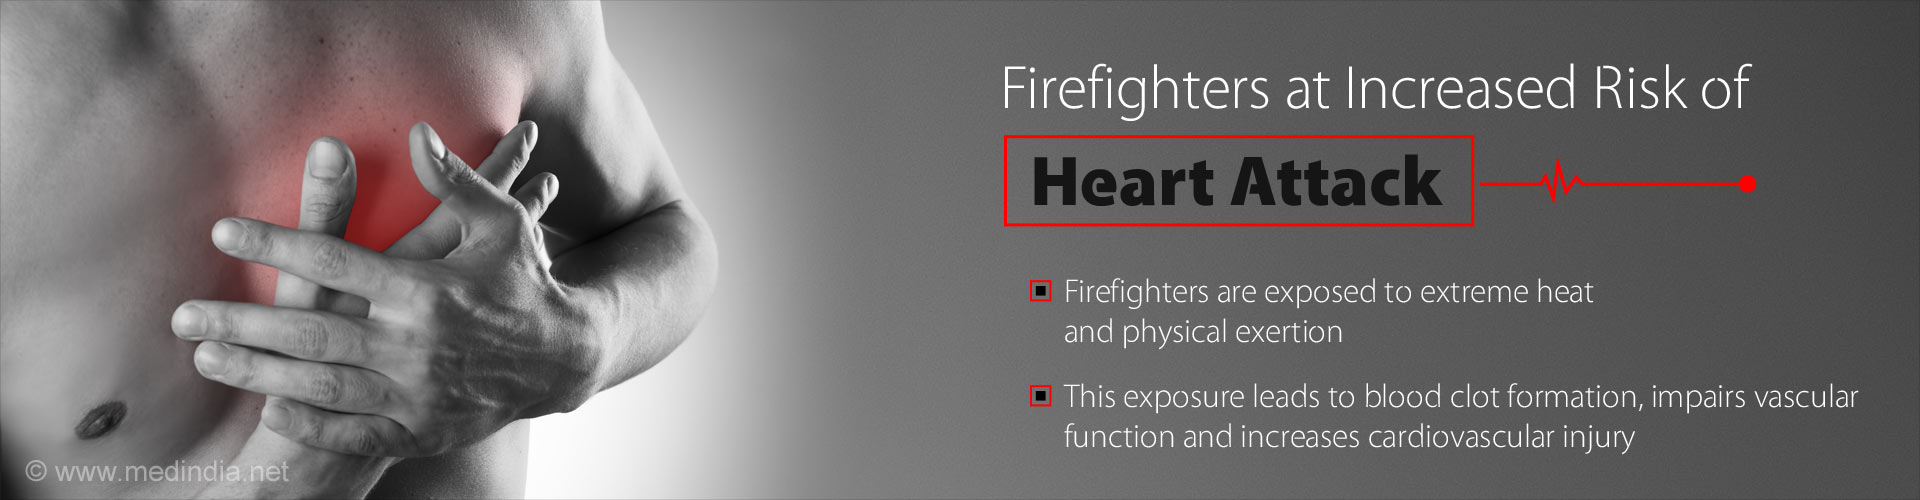 Firefighters at Increased Risk of Heart Attack - Firefighters are exposed to extreme heat and physical exertion - This exposure leads to blood clot formaion, impairs vascular function and increases caridovascular injury